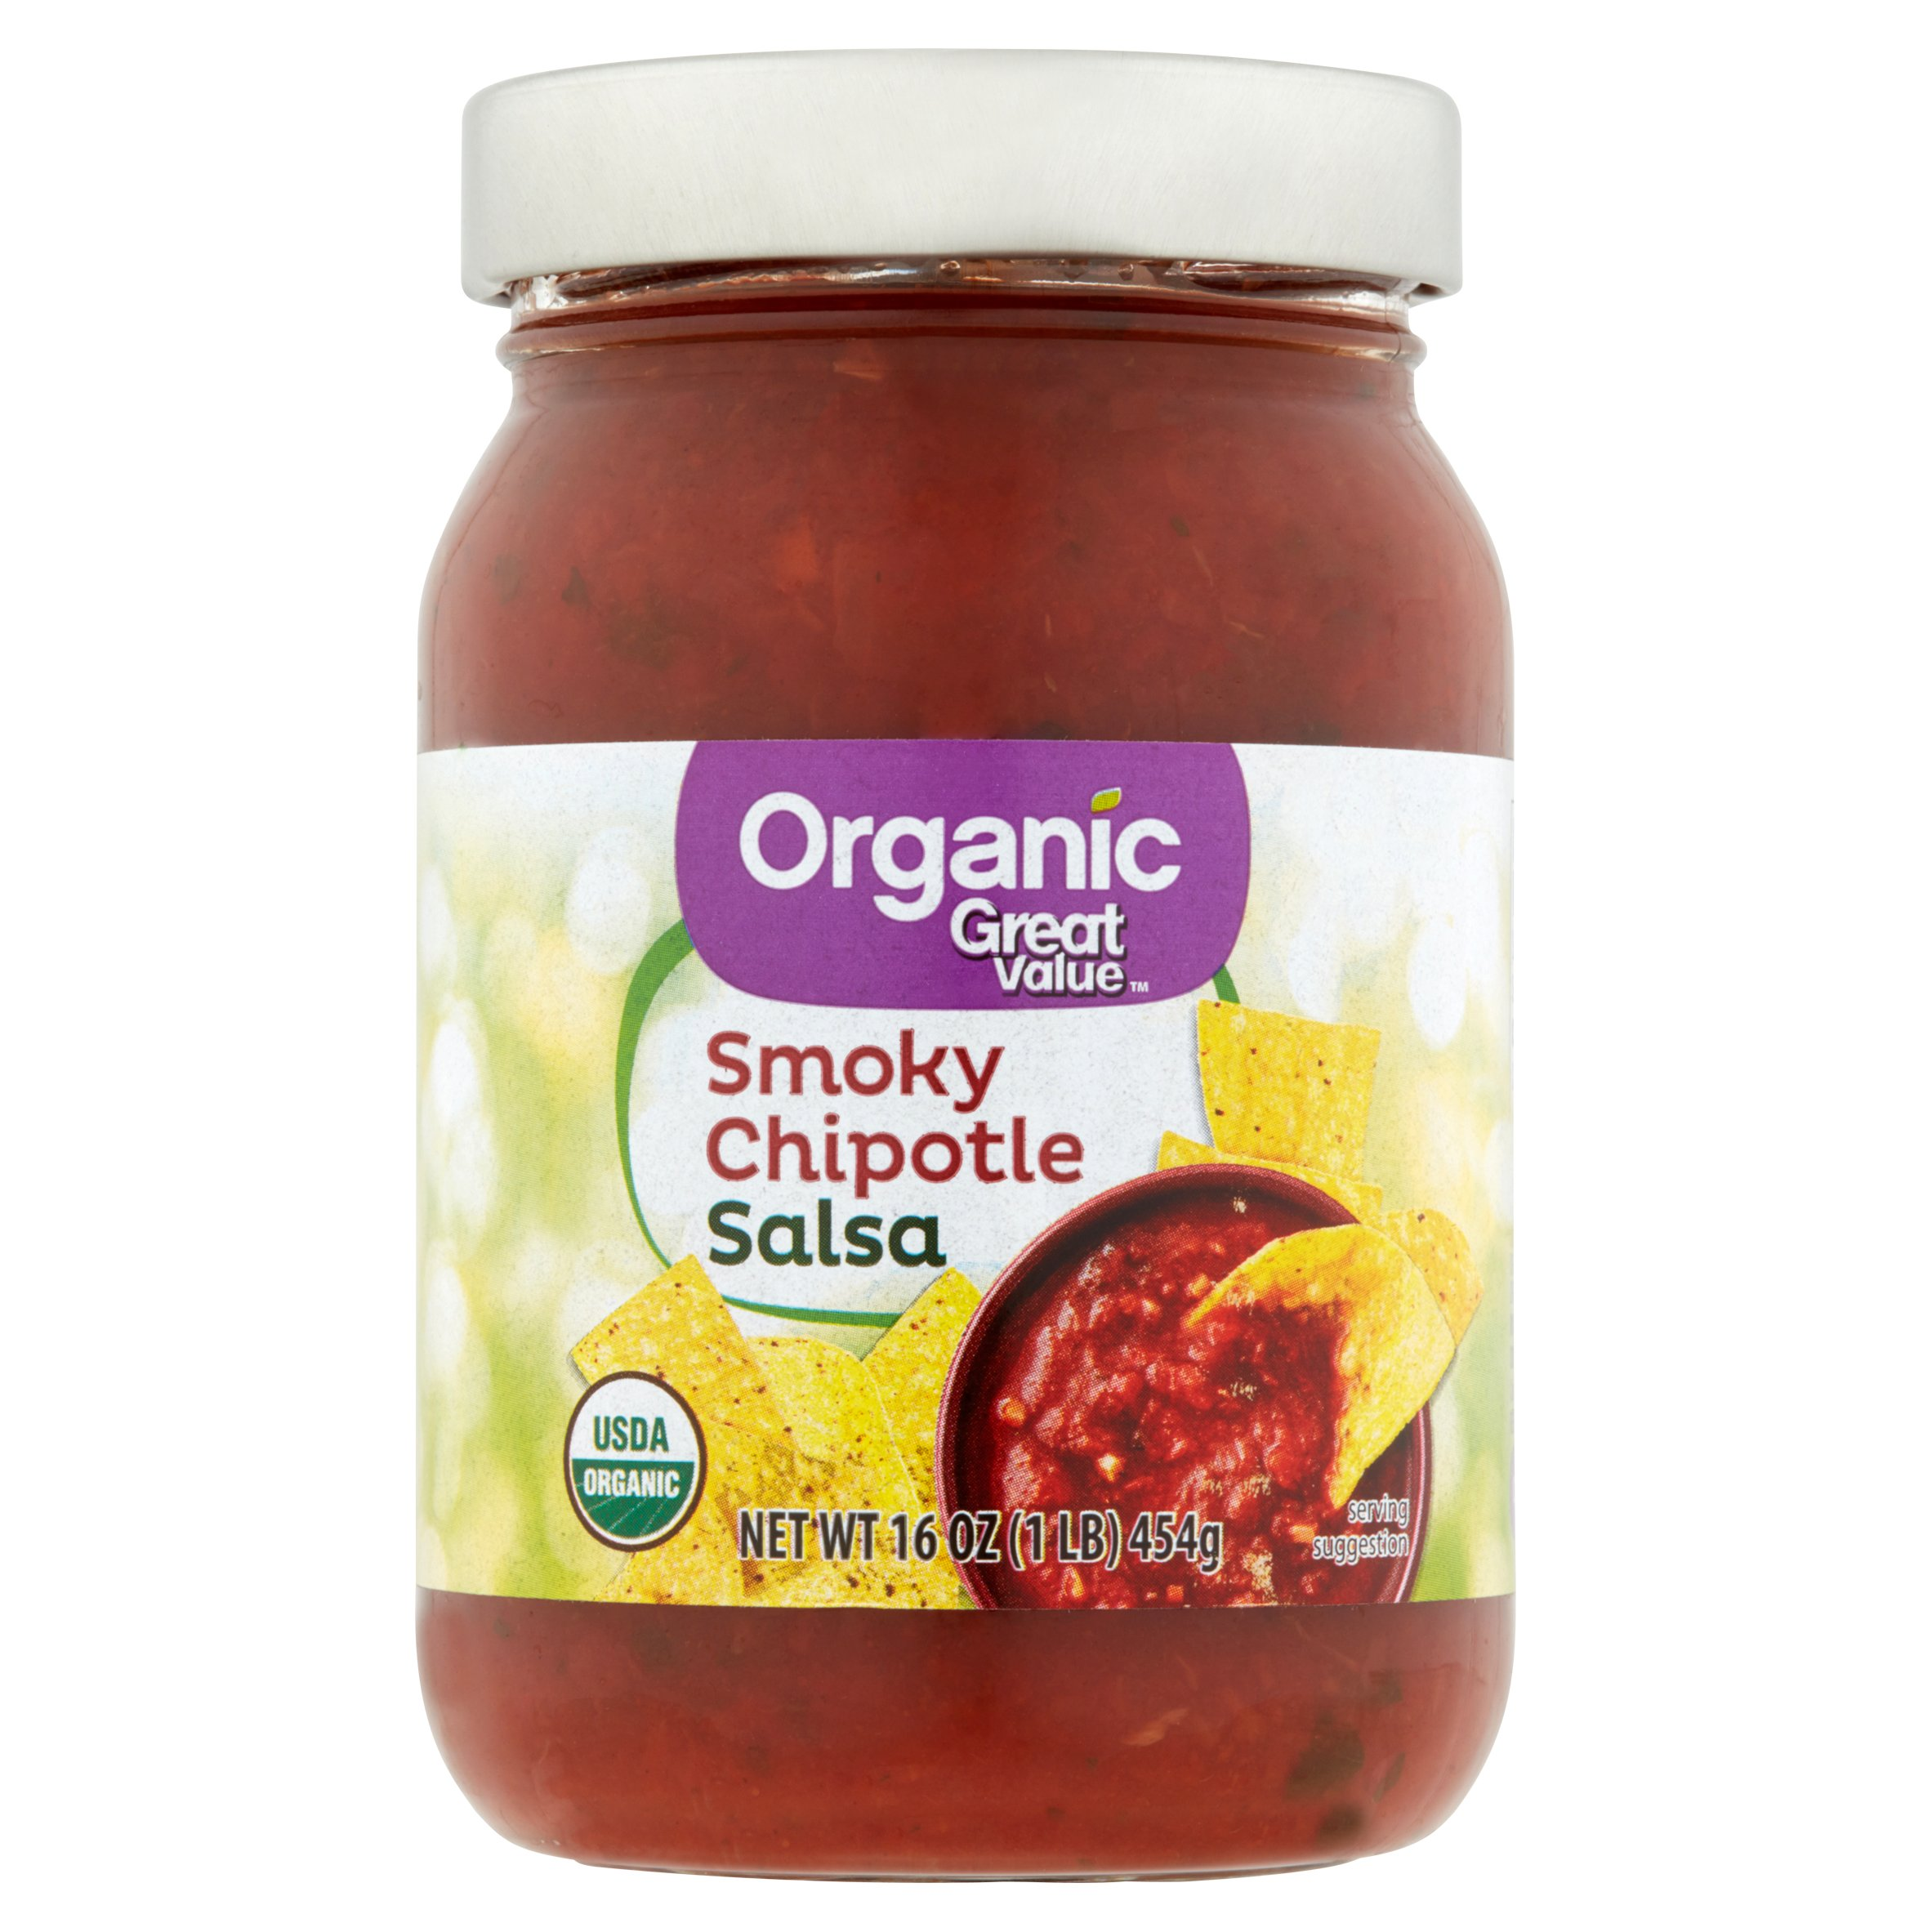 Great Value Organic Salsa Smoky Chipotle, 16 oz